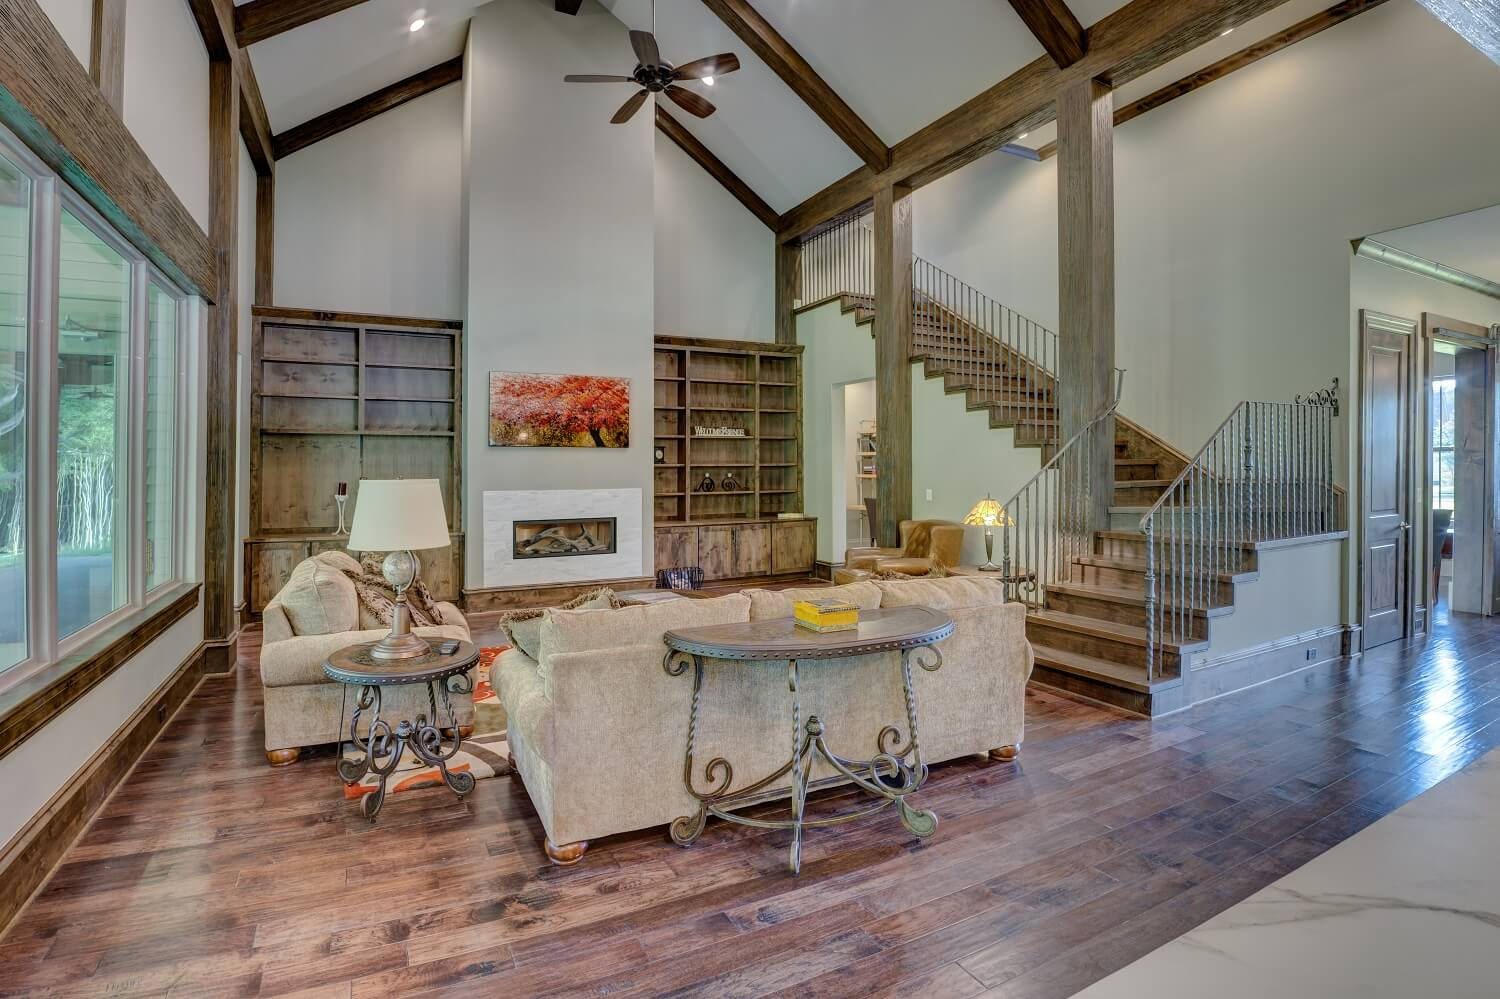 home renovation and home remodeling | Renovation and Remodeling in Frisco, TX 75033 | Free Consultations